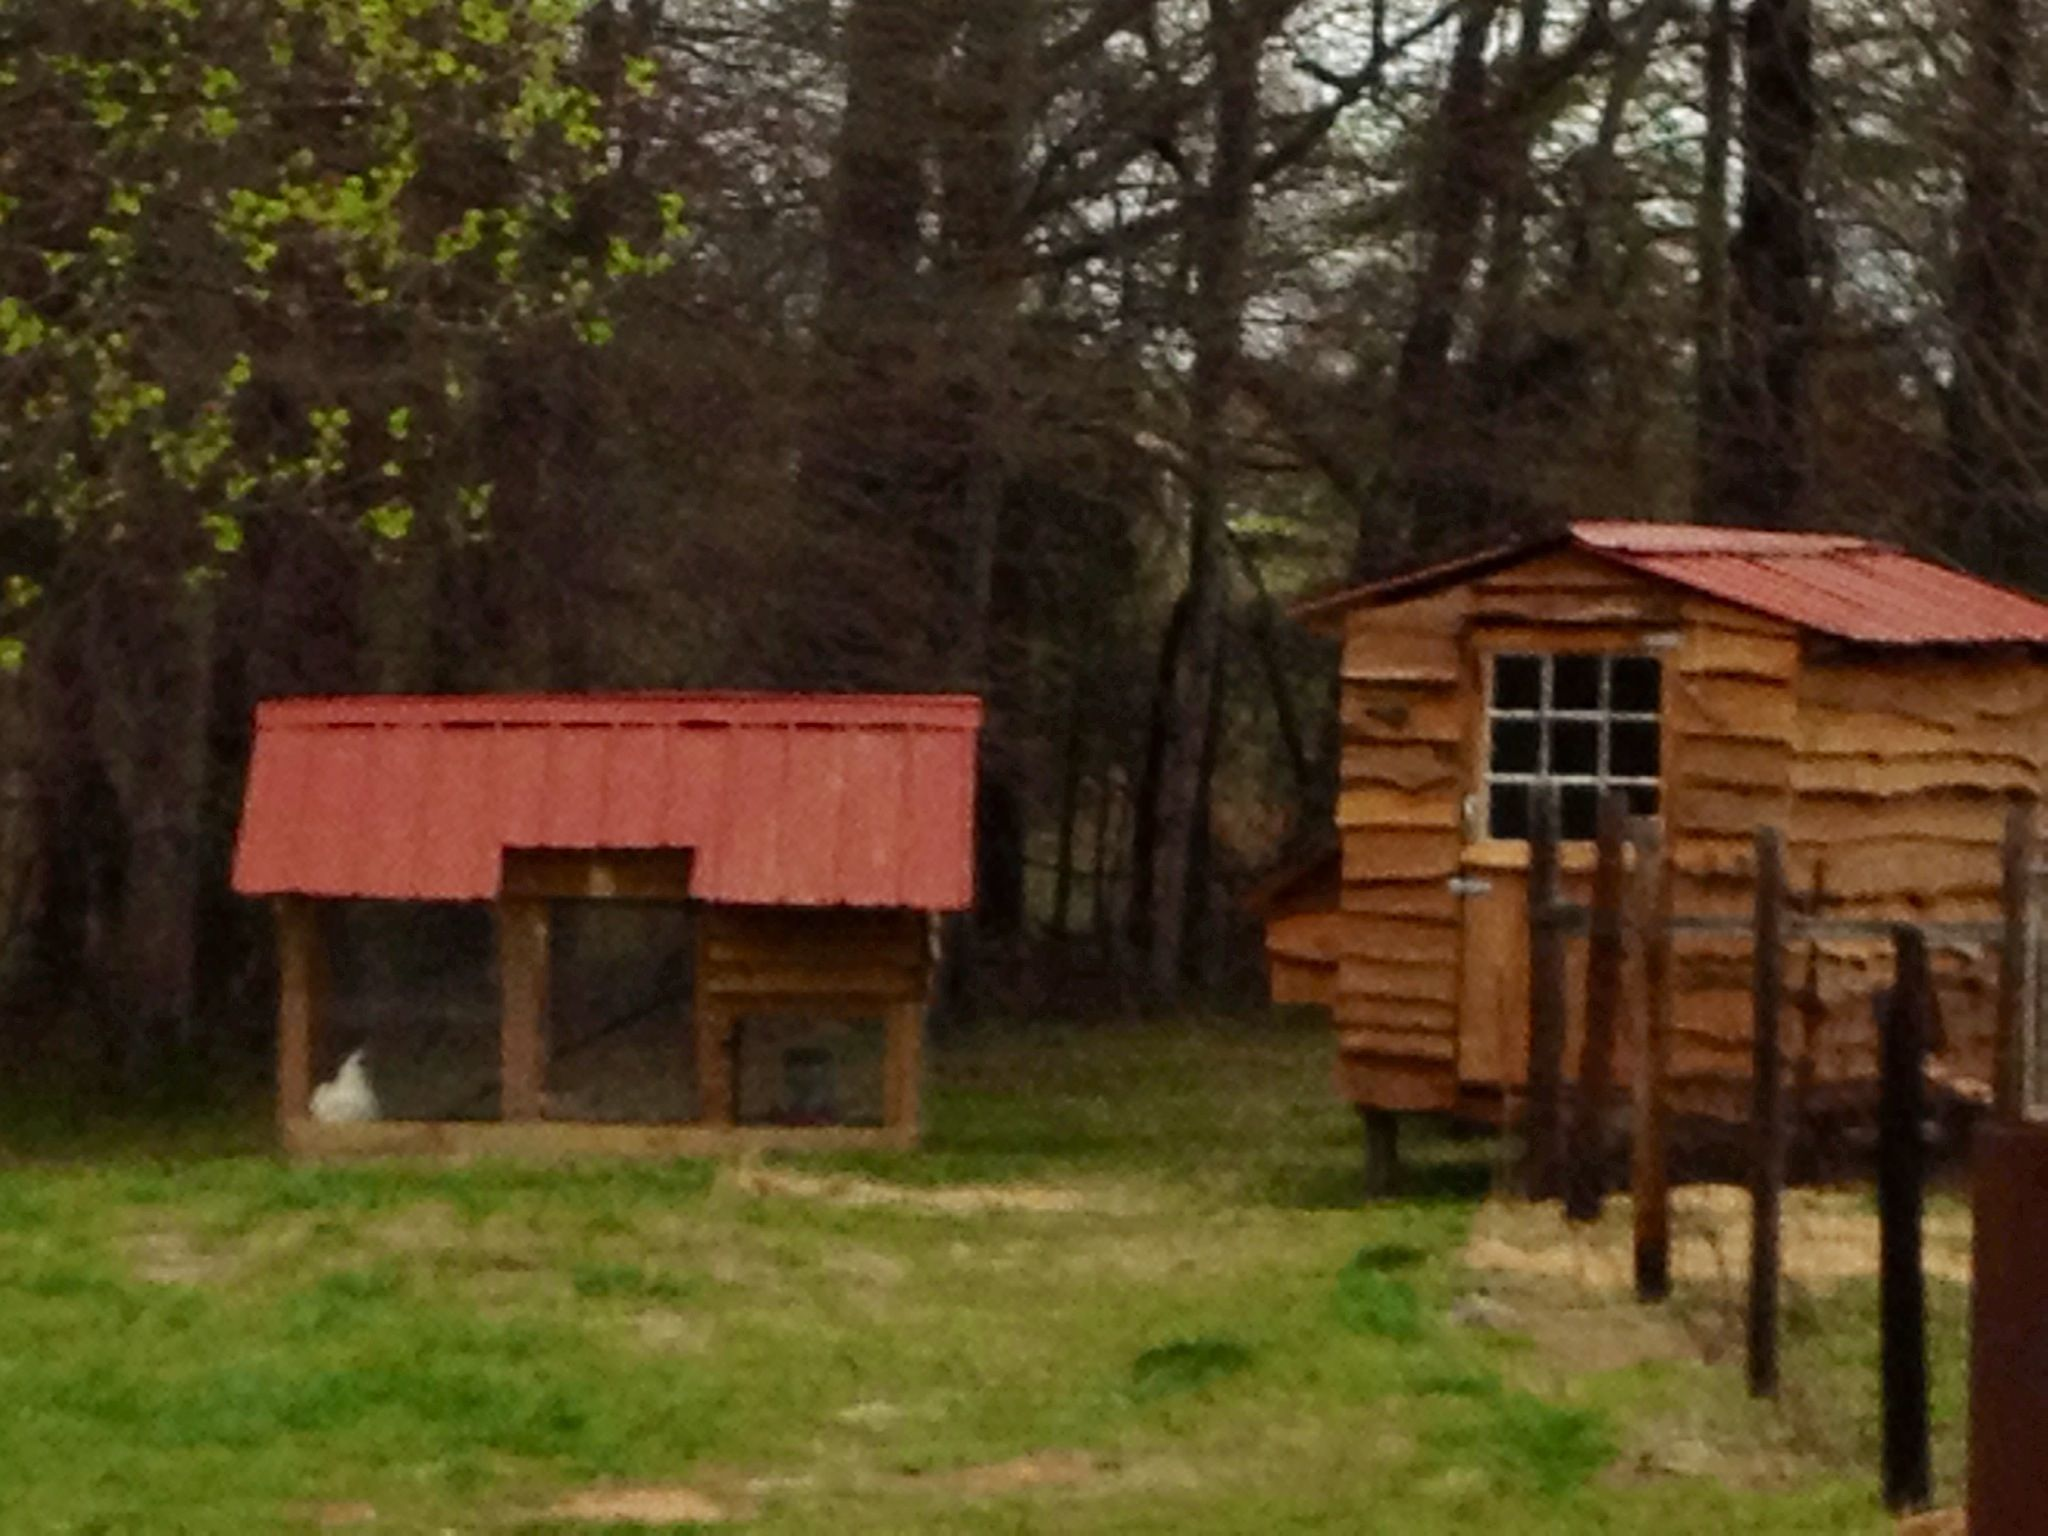 Homemade chicken coops mostly outside pinterest for Homemade chicken house